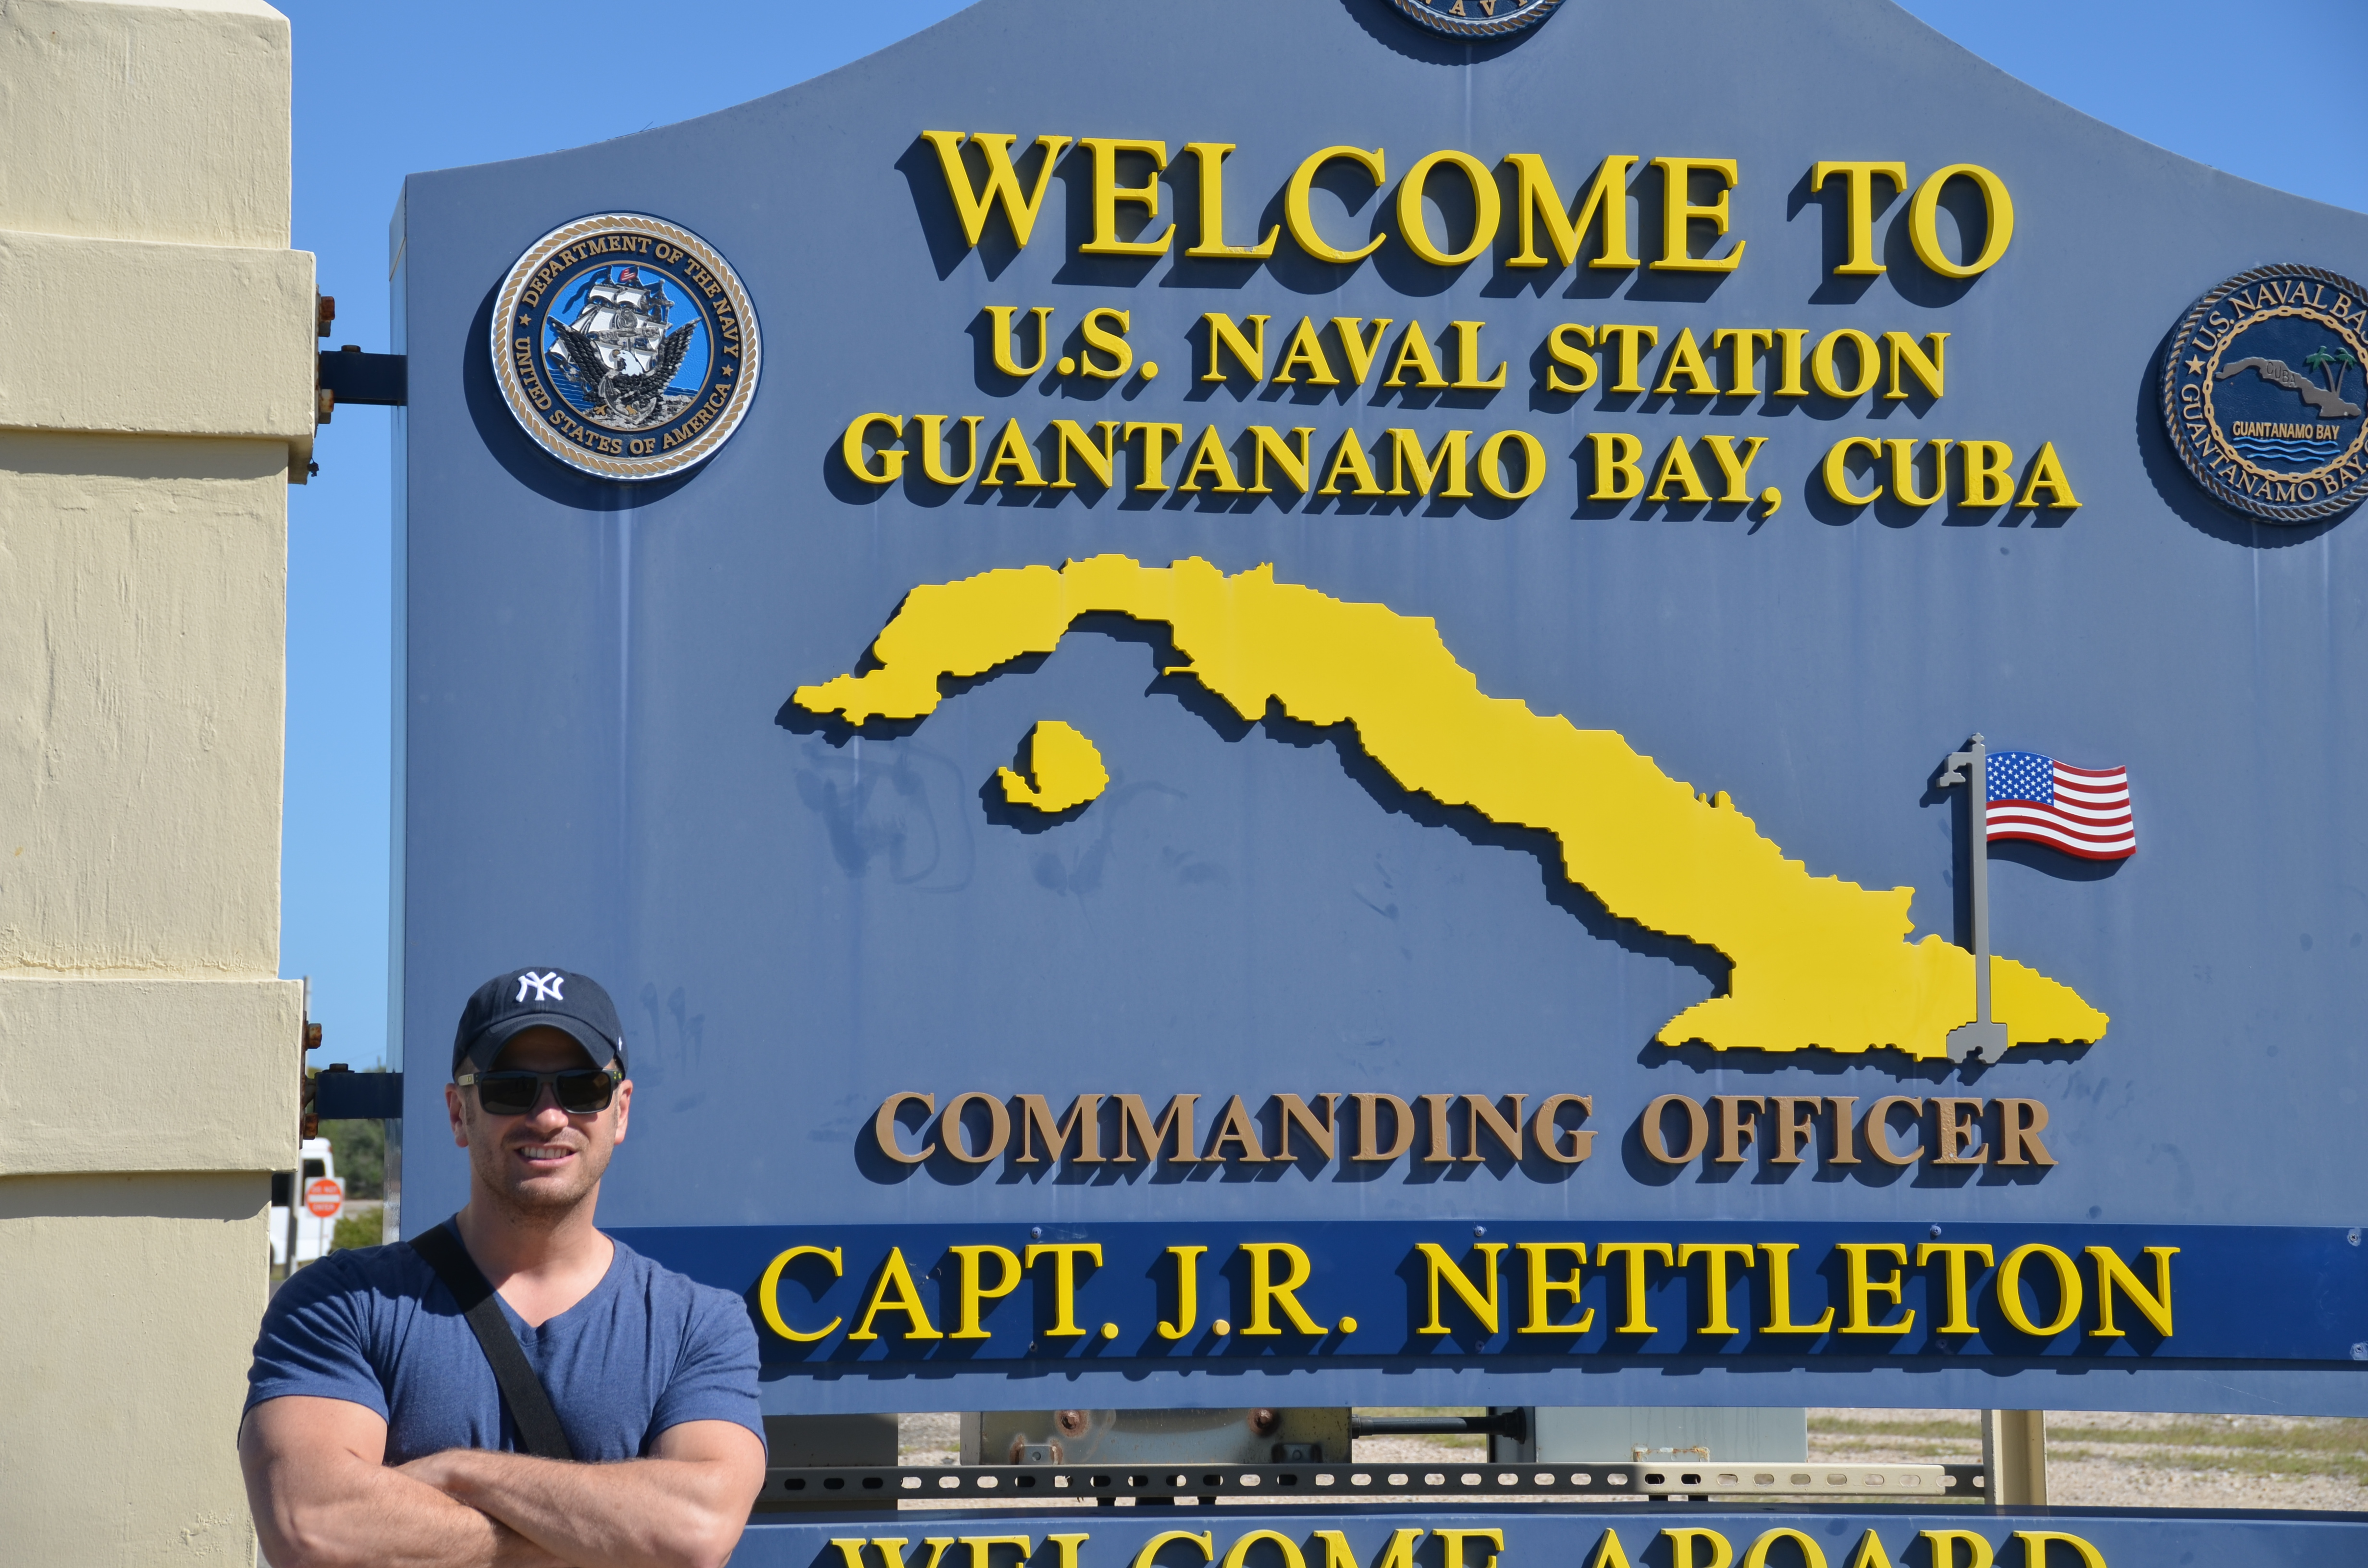 Guantanamo Bay, Cuba: What It's Really Like